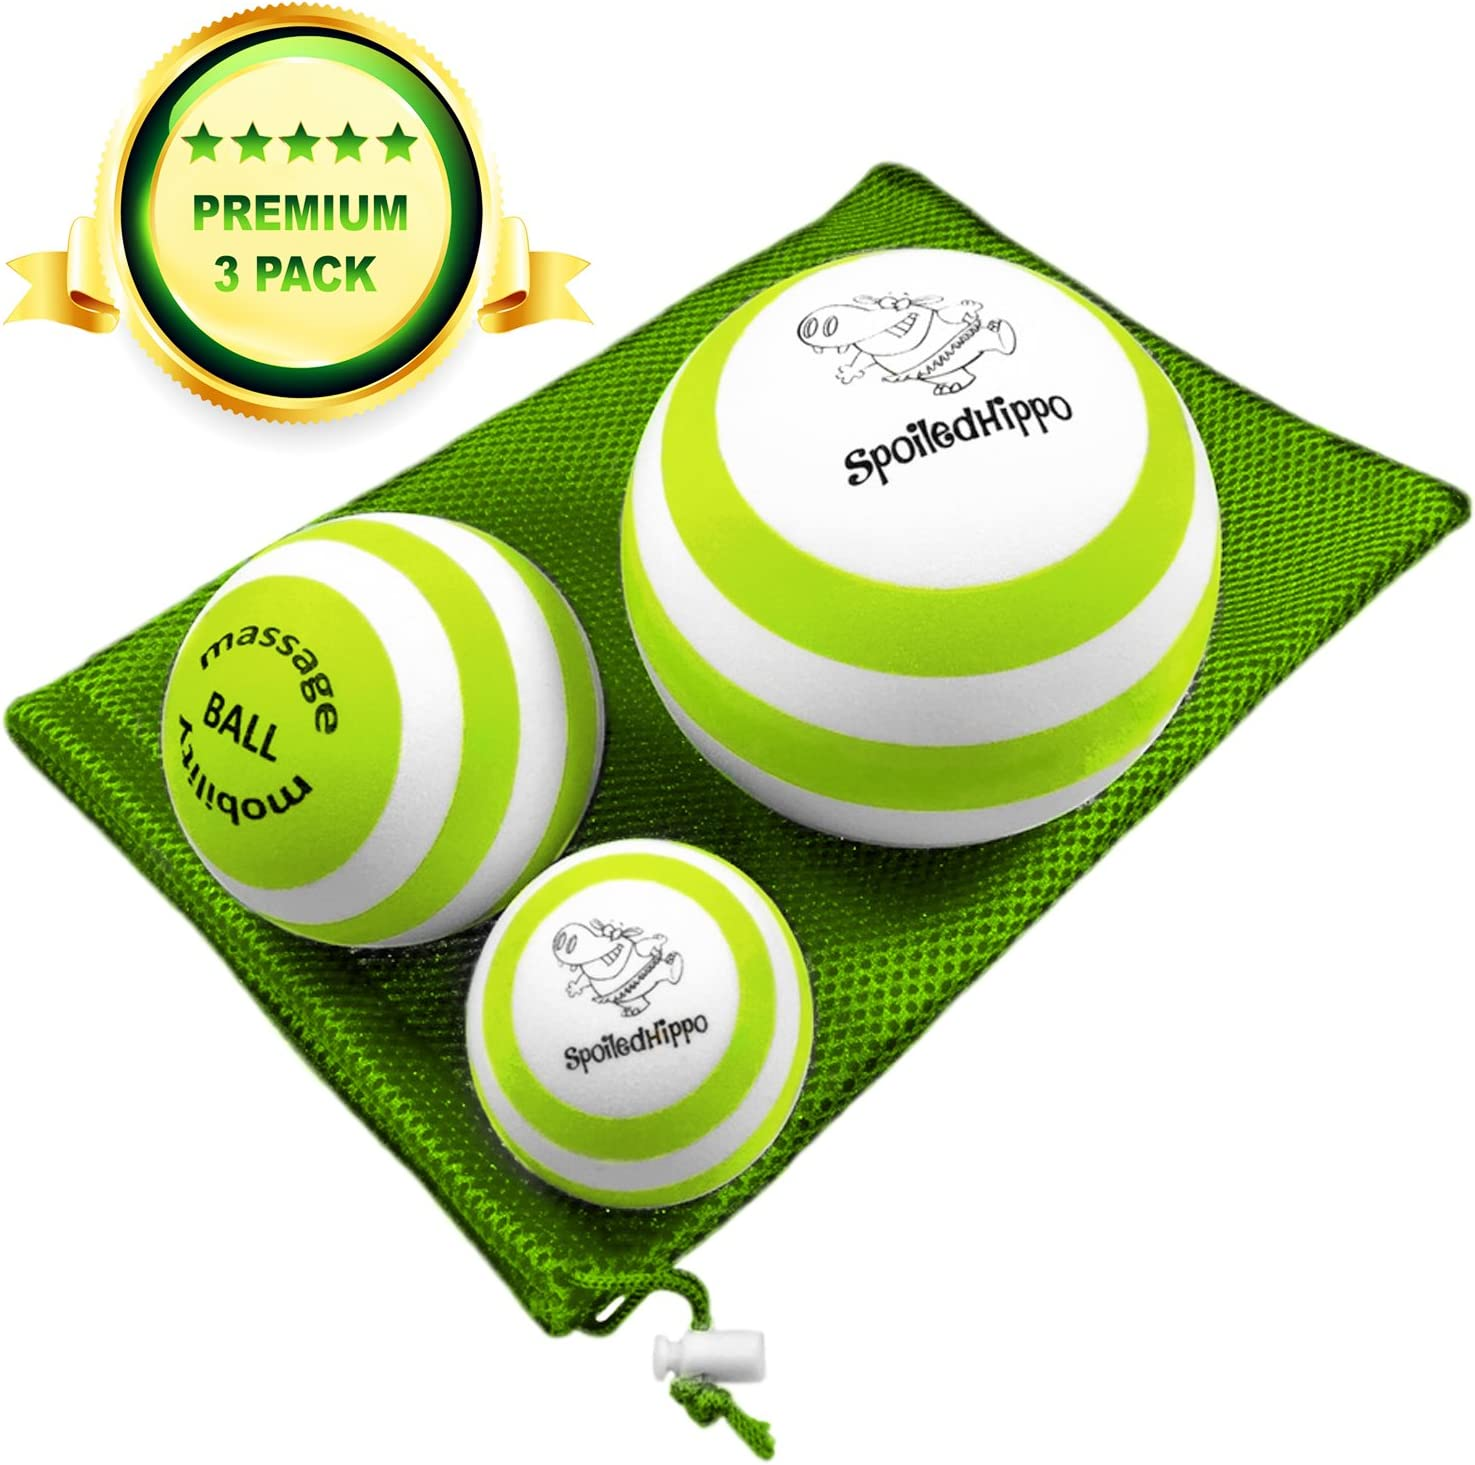 SpoiledHippo Massage Ball - Deep Tissue Massage Therapy, Myofascial Release, Trigger Point Massager - Muscle Pain Relief, Muscle Knots Foam Ball, Self Massage Physical Therapy Ball